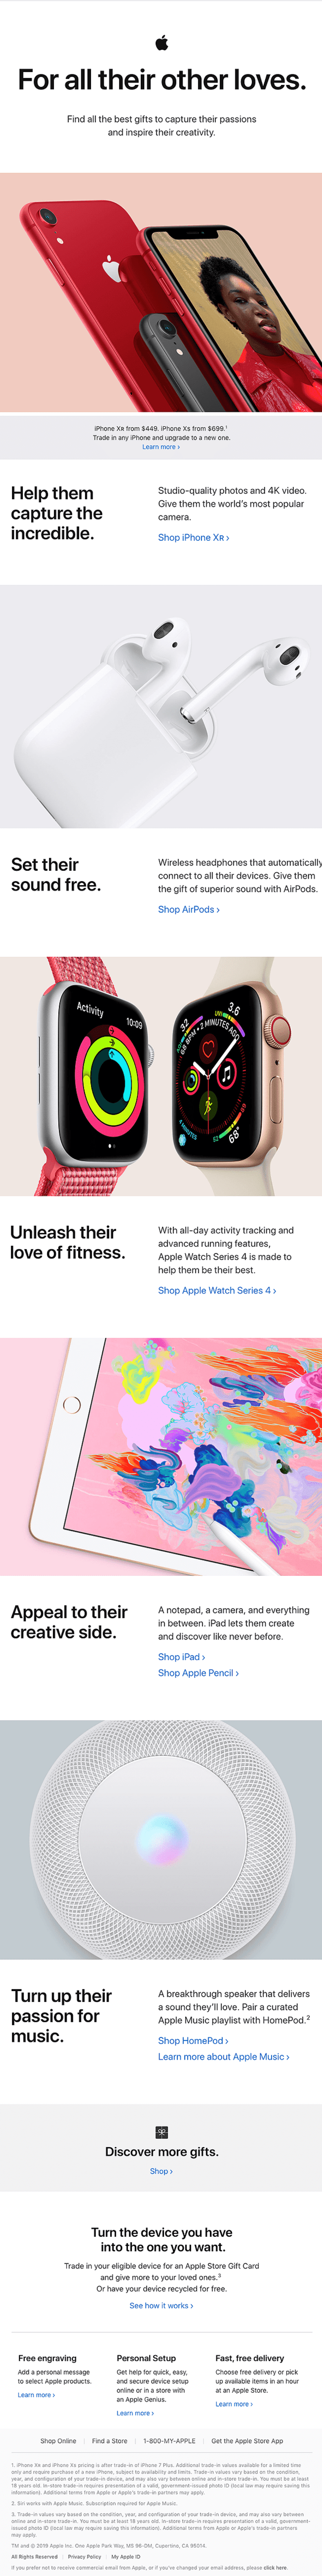 Email Marketing Example Apple-min